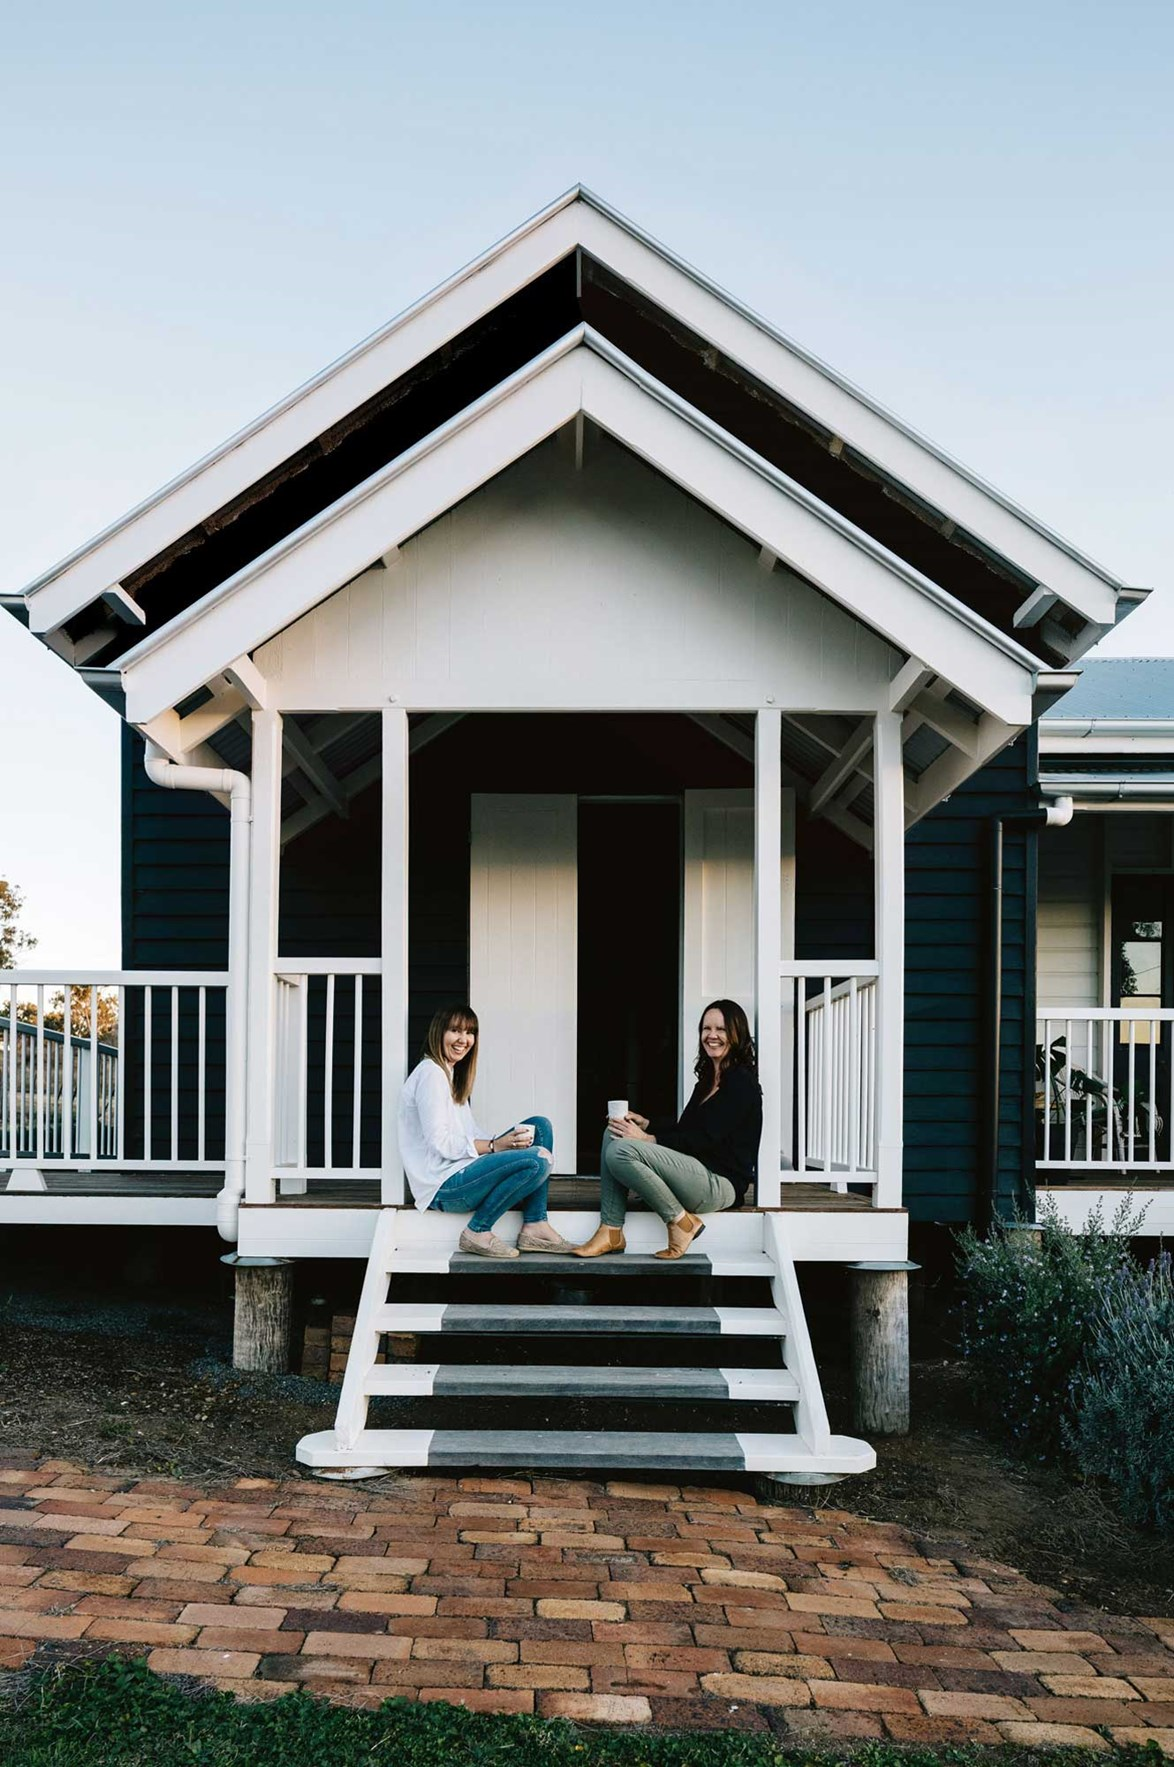 "[Renovating a former courthouse](https://www.homestolove.com.au/courthouse-home-conversion-13923|target=""_blank"") in Meringandan, Queensland, was a family project for mother-daughter pair Cathy and Kirstie Penton. ""We were worried someone would buy it and knock it down as it was in really bad disrepair,"" says Cathy. ""We didn't really have the money at the time but we thought why not? We knew it could be beautiful again."""